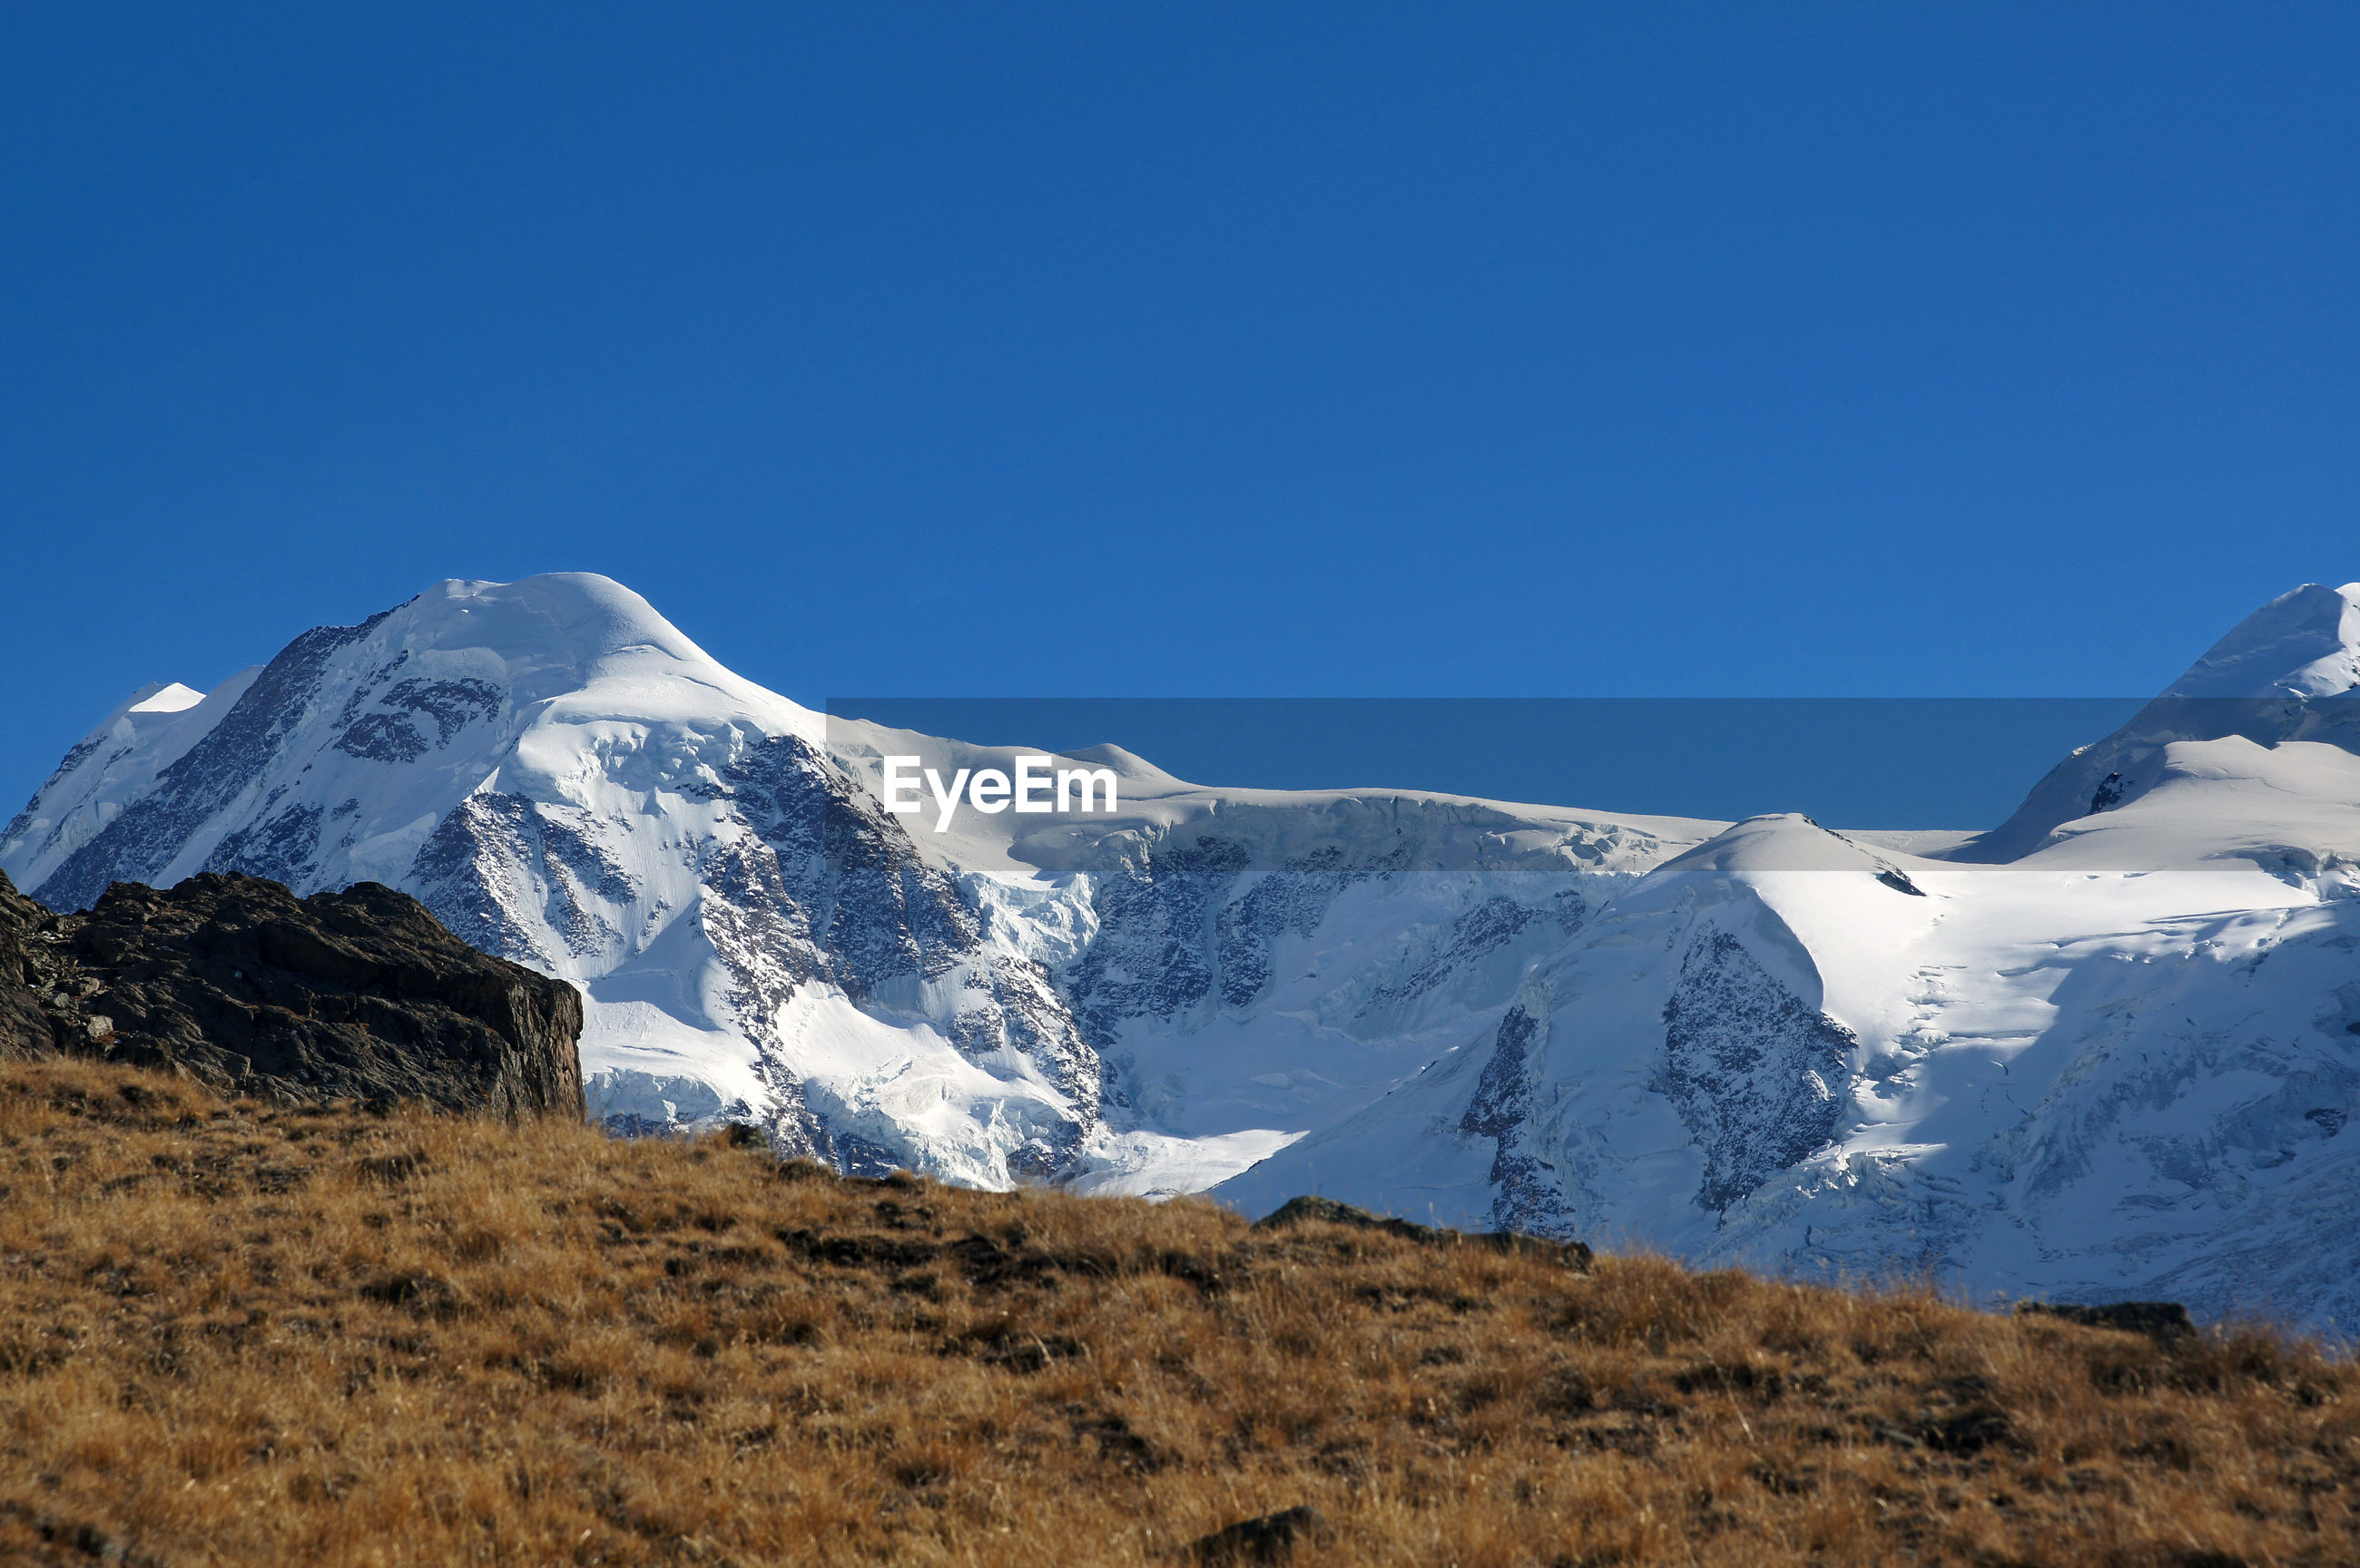 SNOWCAPPED MOUNTAINS AGAINST CLEAR BLUE SKY